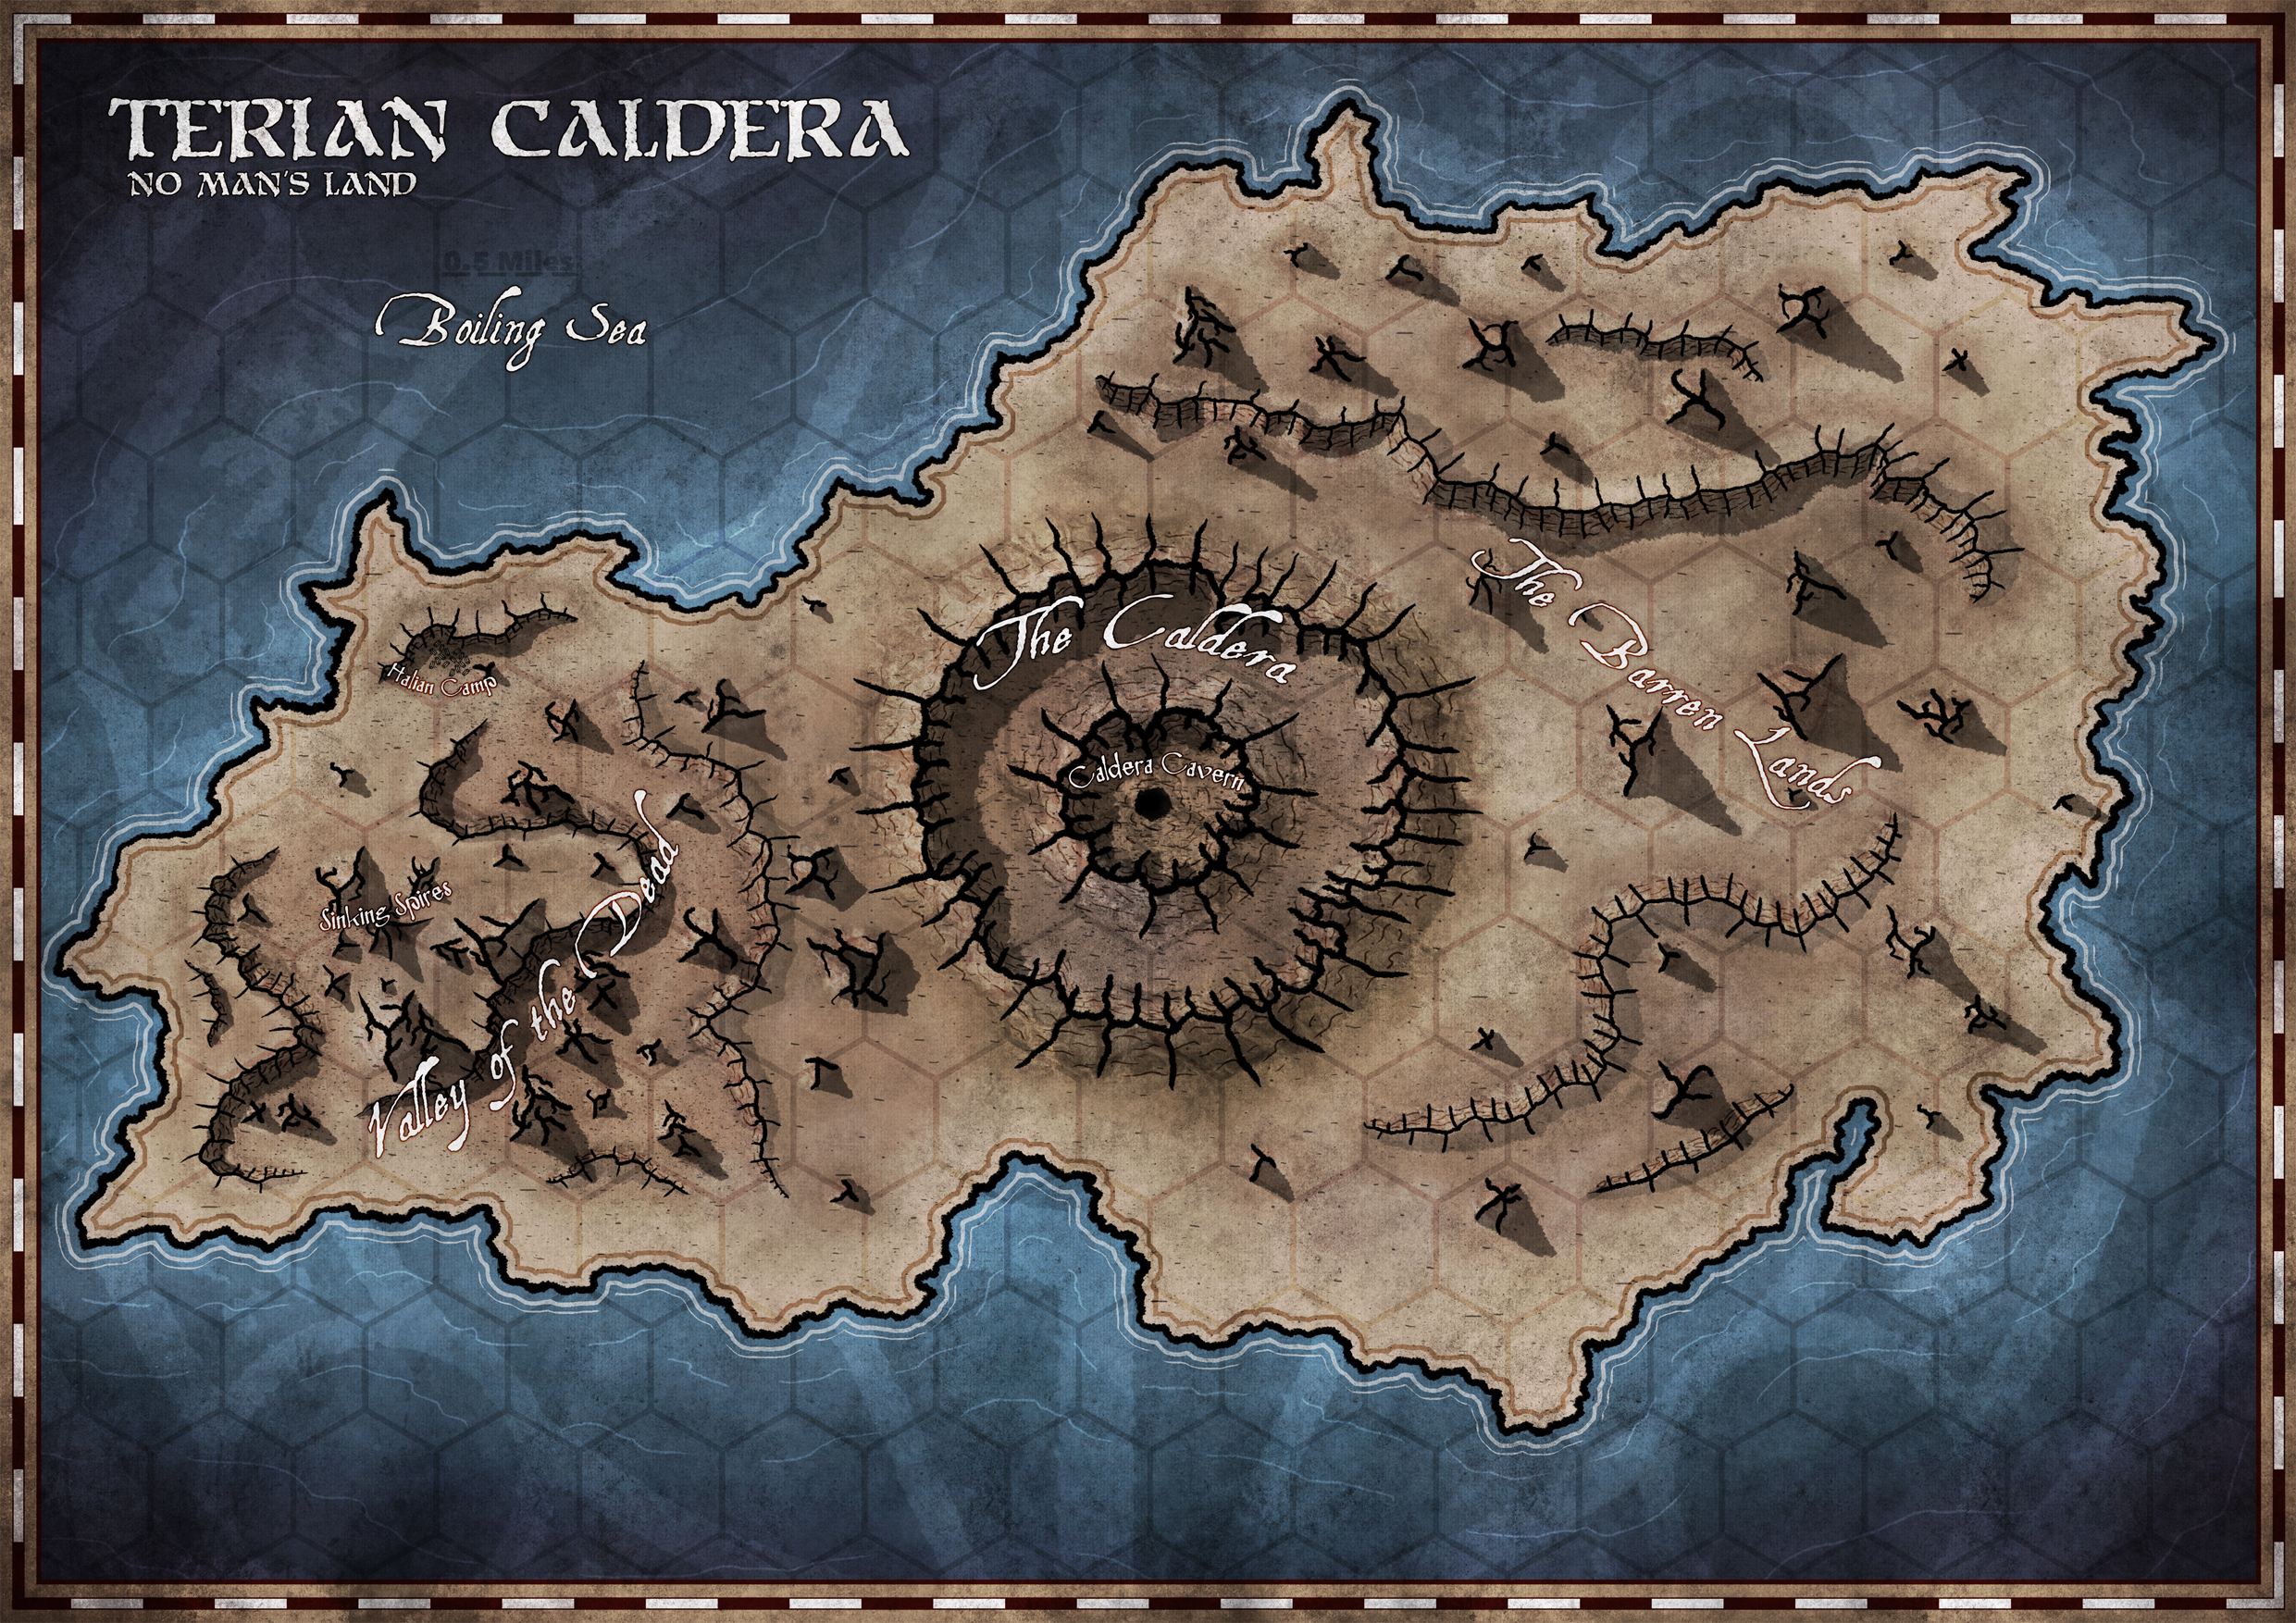 Development imagery, subject to change. The Terian Caldera, a Province Map.